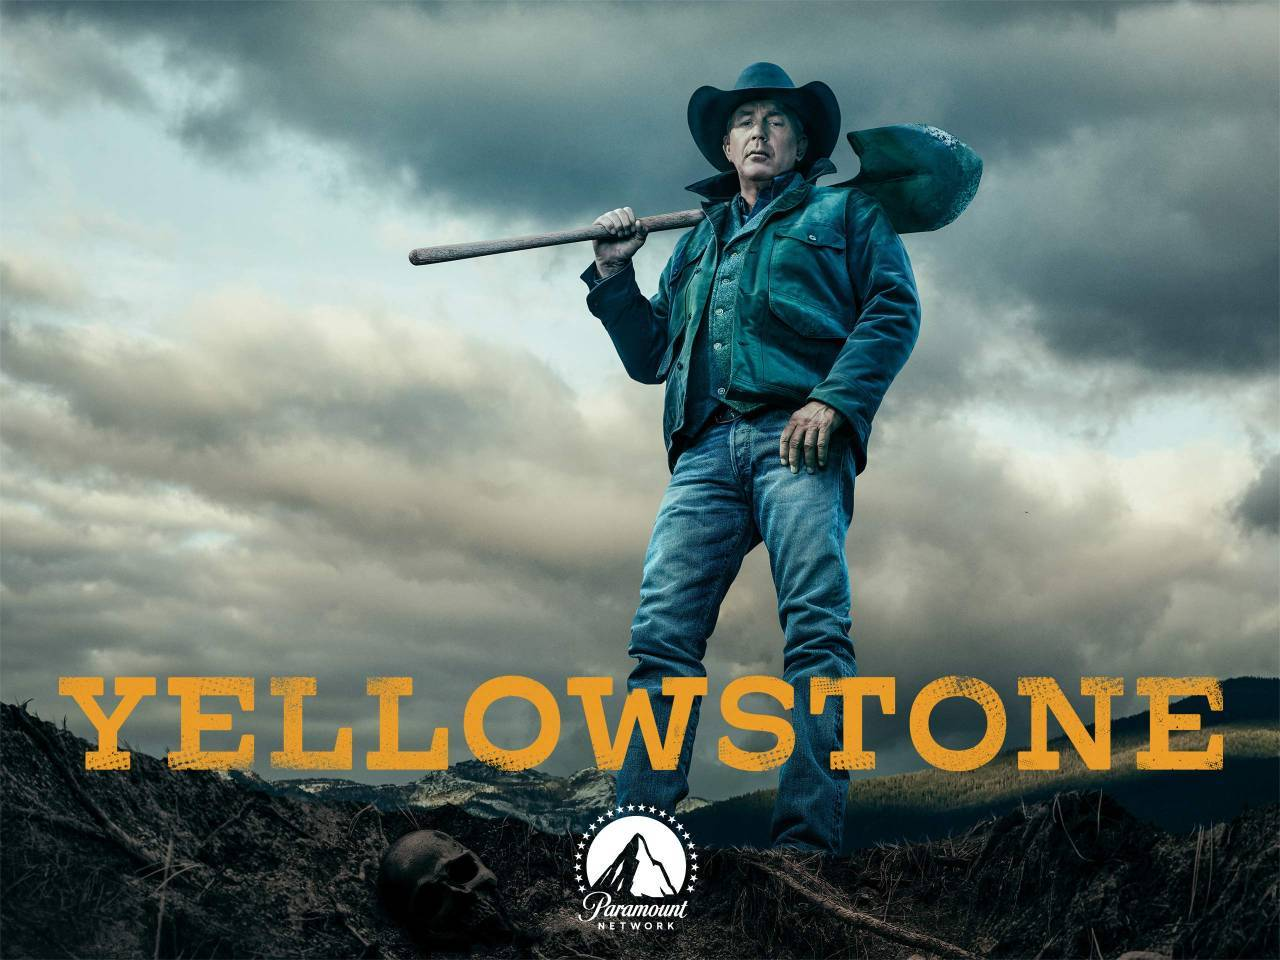 Yellowstone Tops This Week's Most Watched at Home List